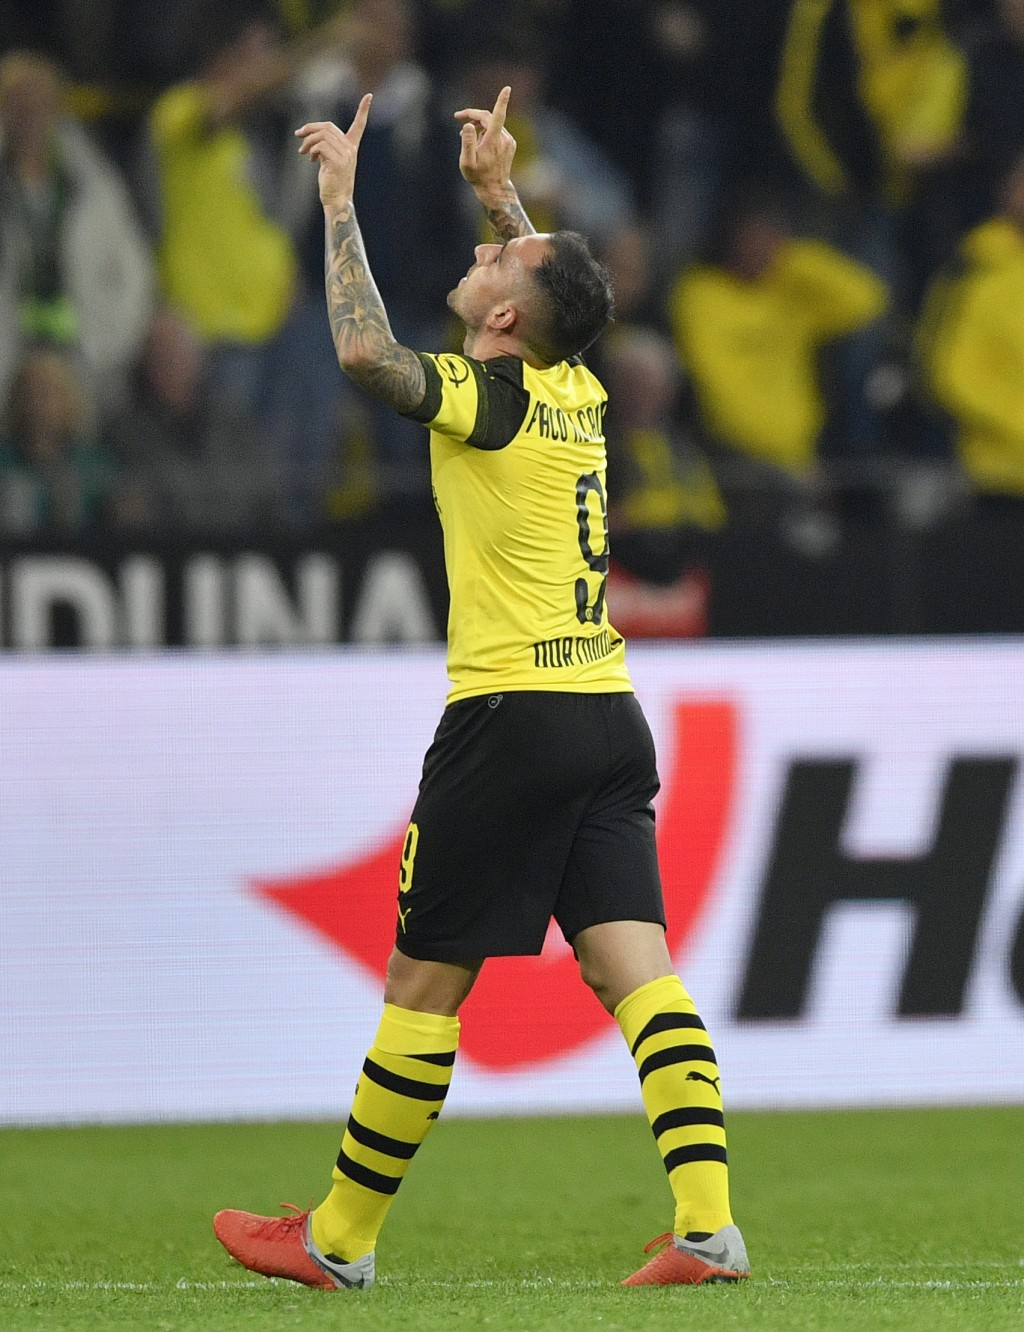 Dortmund's new forward Paco Alcacer celebrates after scoring his side's third goal at his debut during the German Bundesliga soccer match between Boru